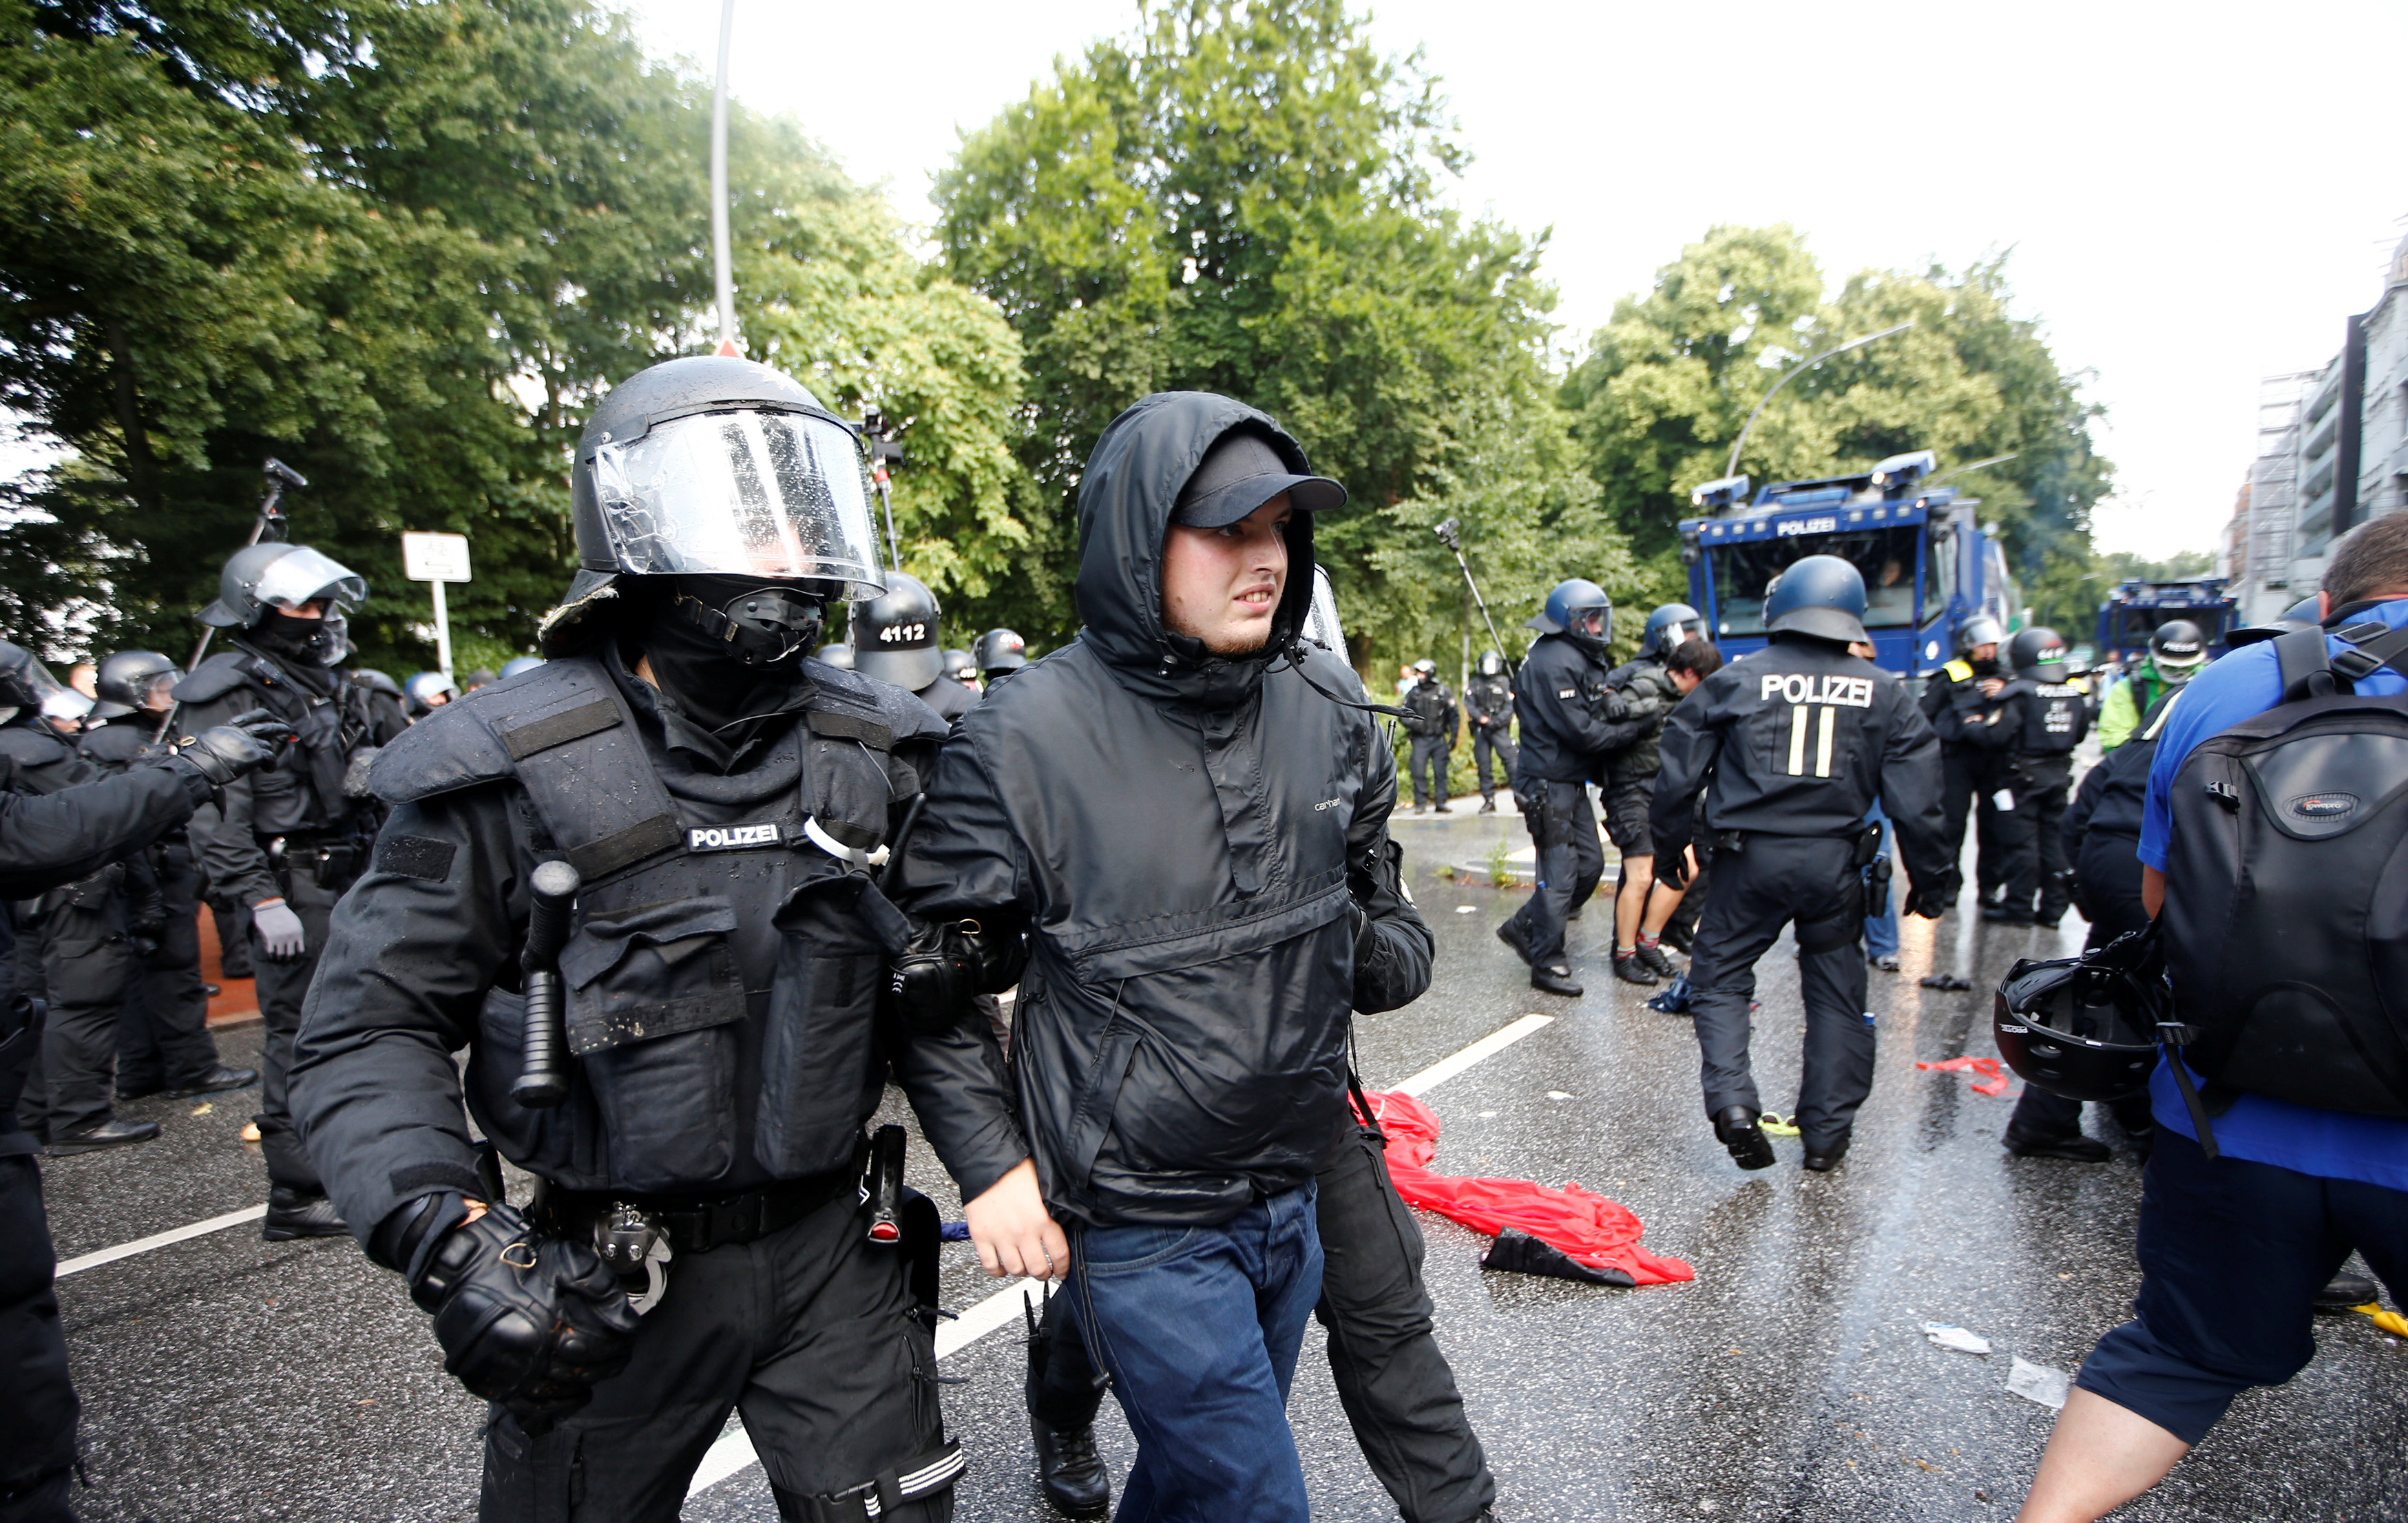 2017-07-07T102000Z 546916319 UP1ED770MHHIV RTRMADP 3 G20-GERMANY-BLOCKADES